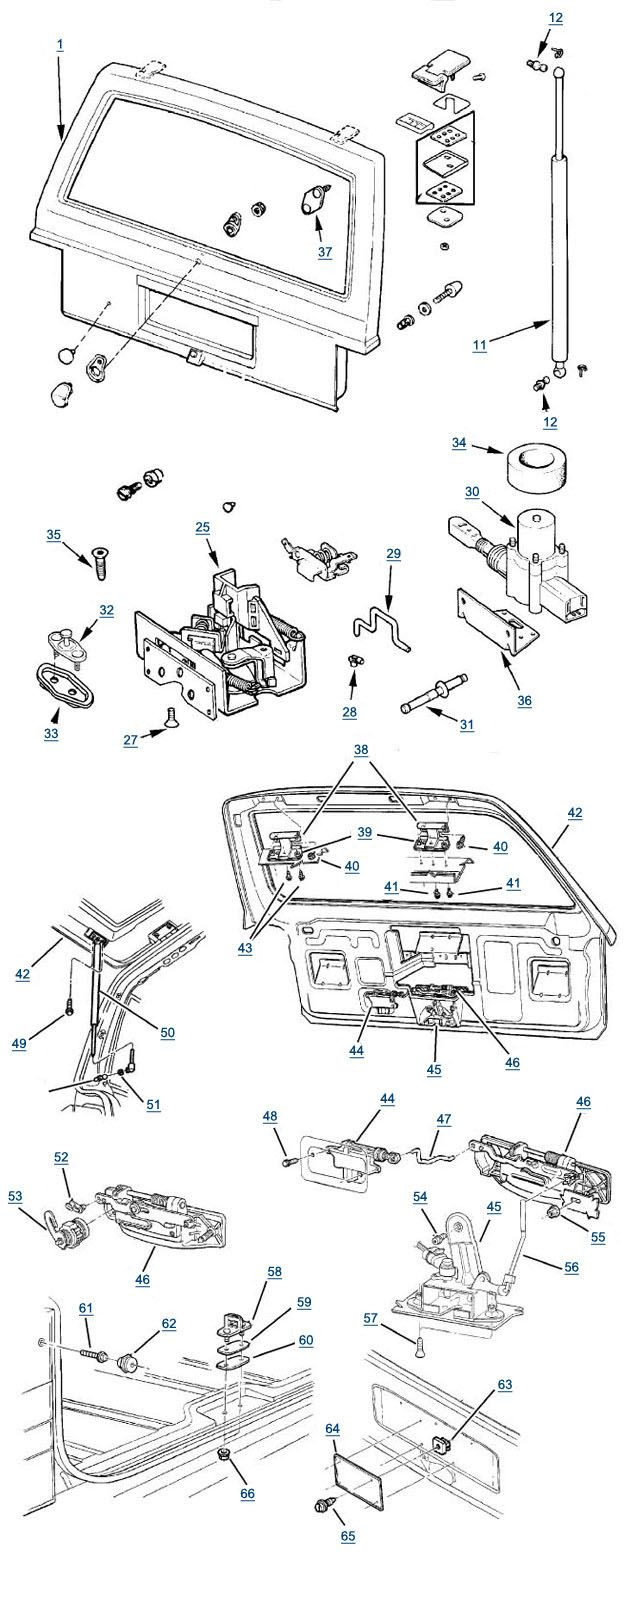 44 best cherokee diagrams images on pinterest jeep cherokee xj cherokee liftgate parts asfbconference2016 Images